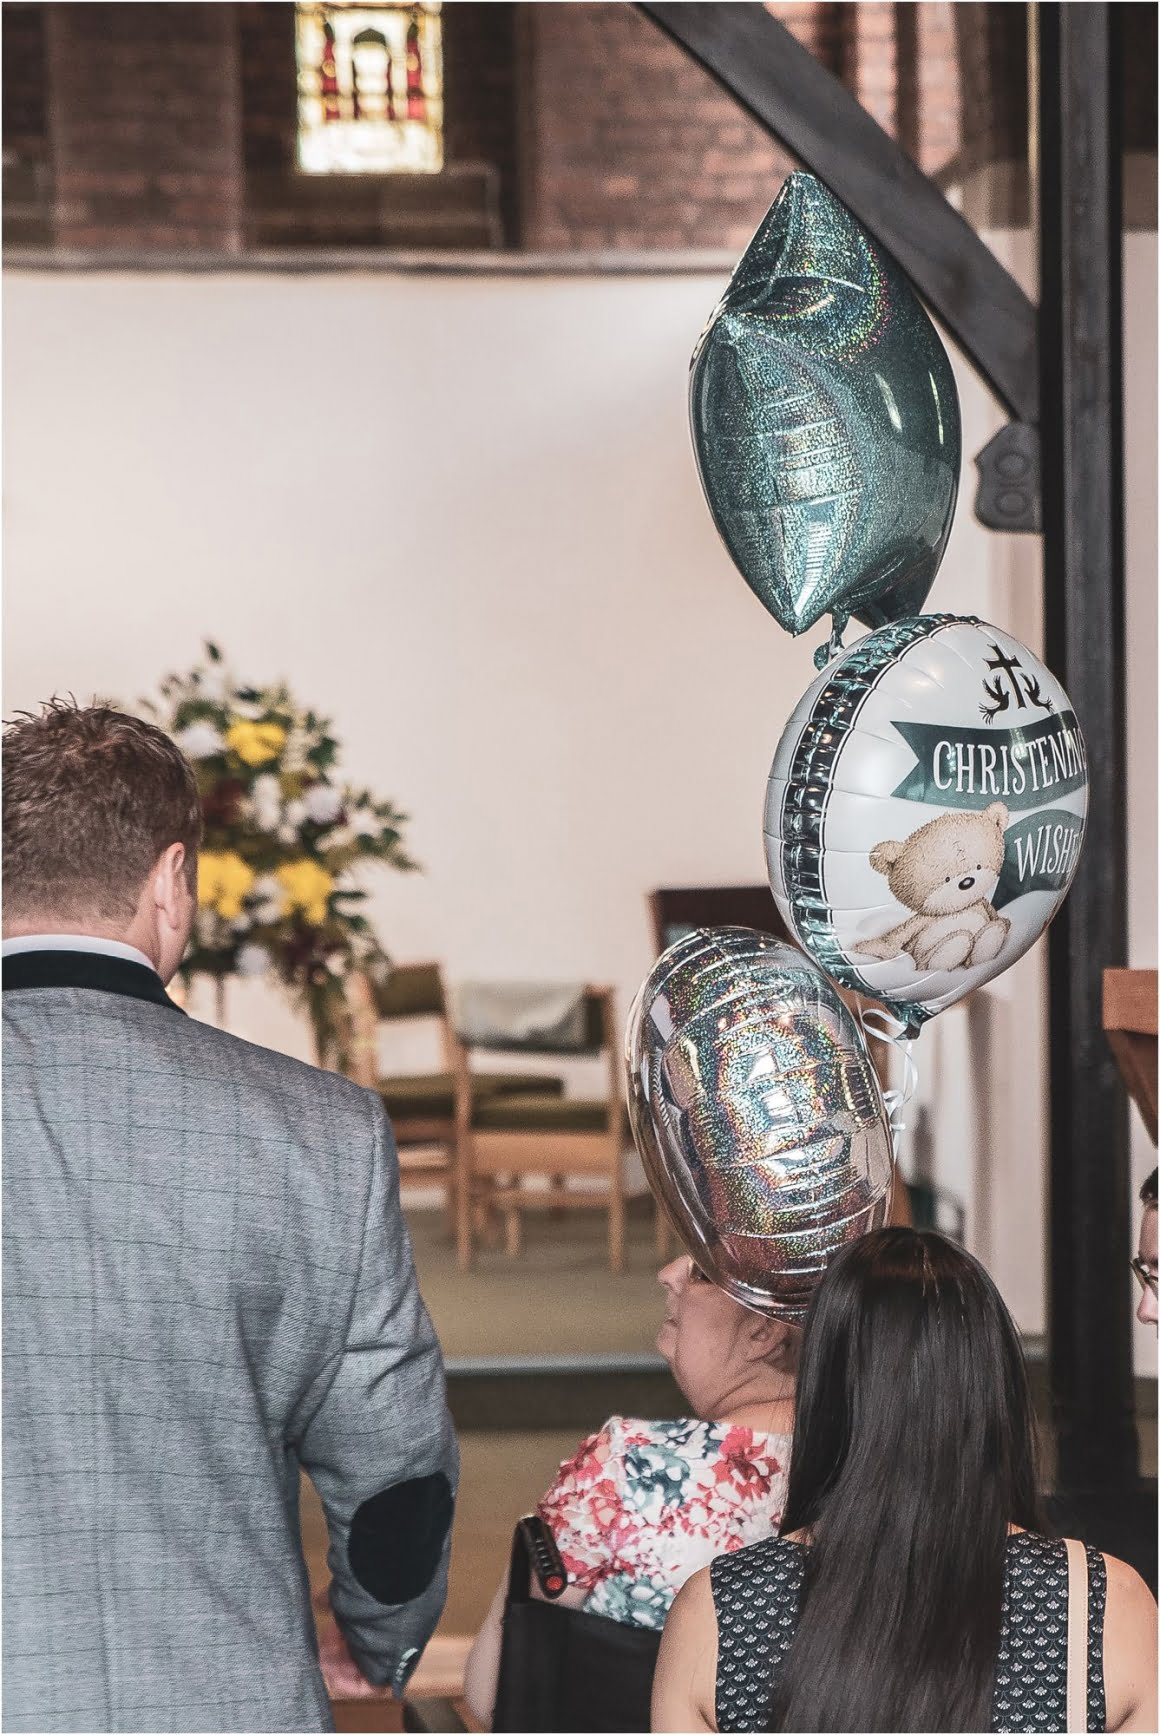 Harry's Christening at St Anne Wrenthorpe - bloons